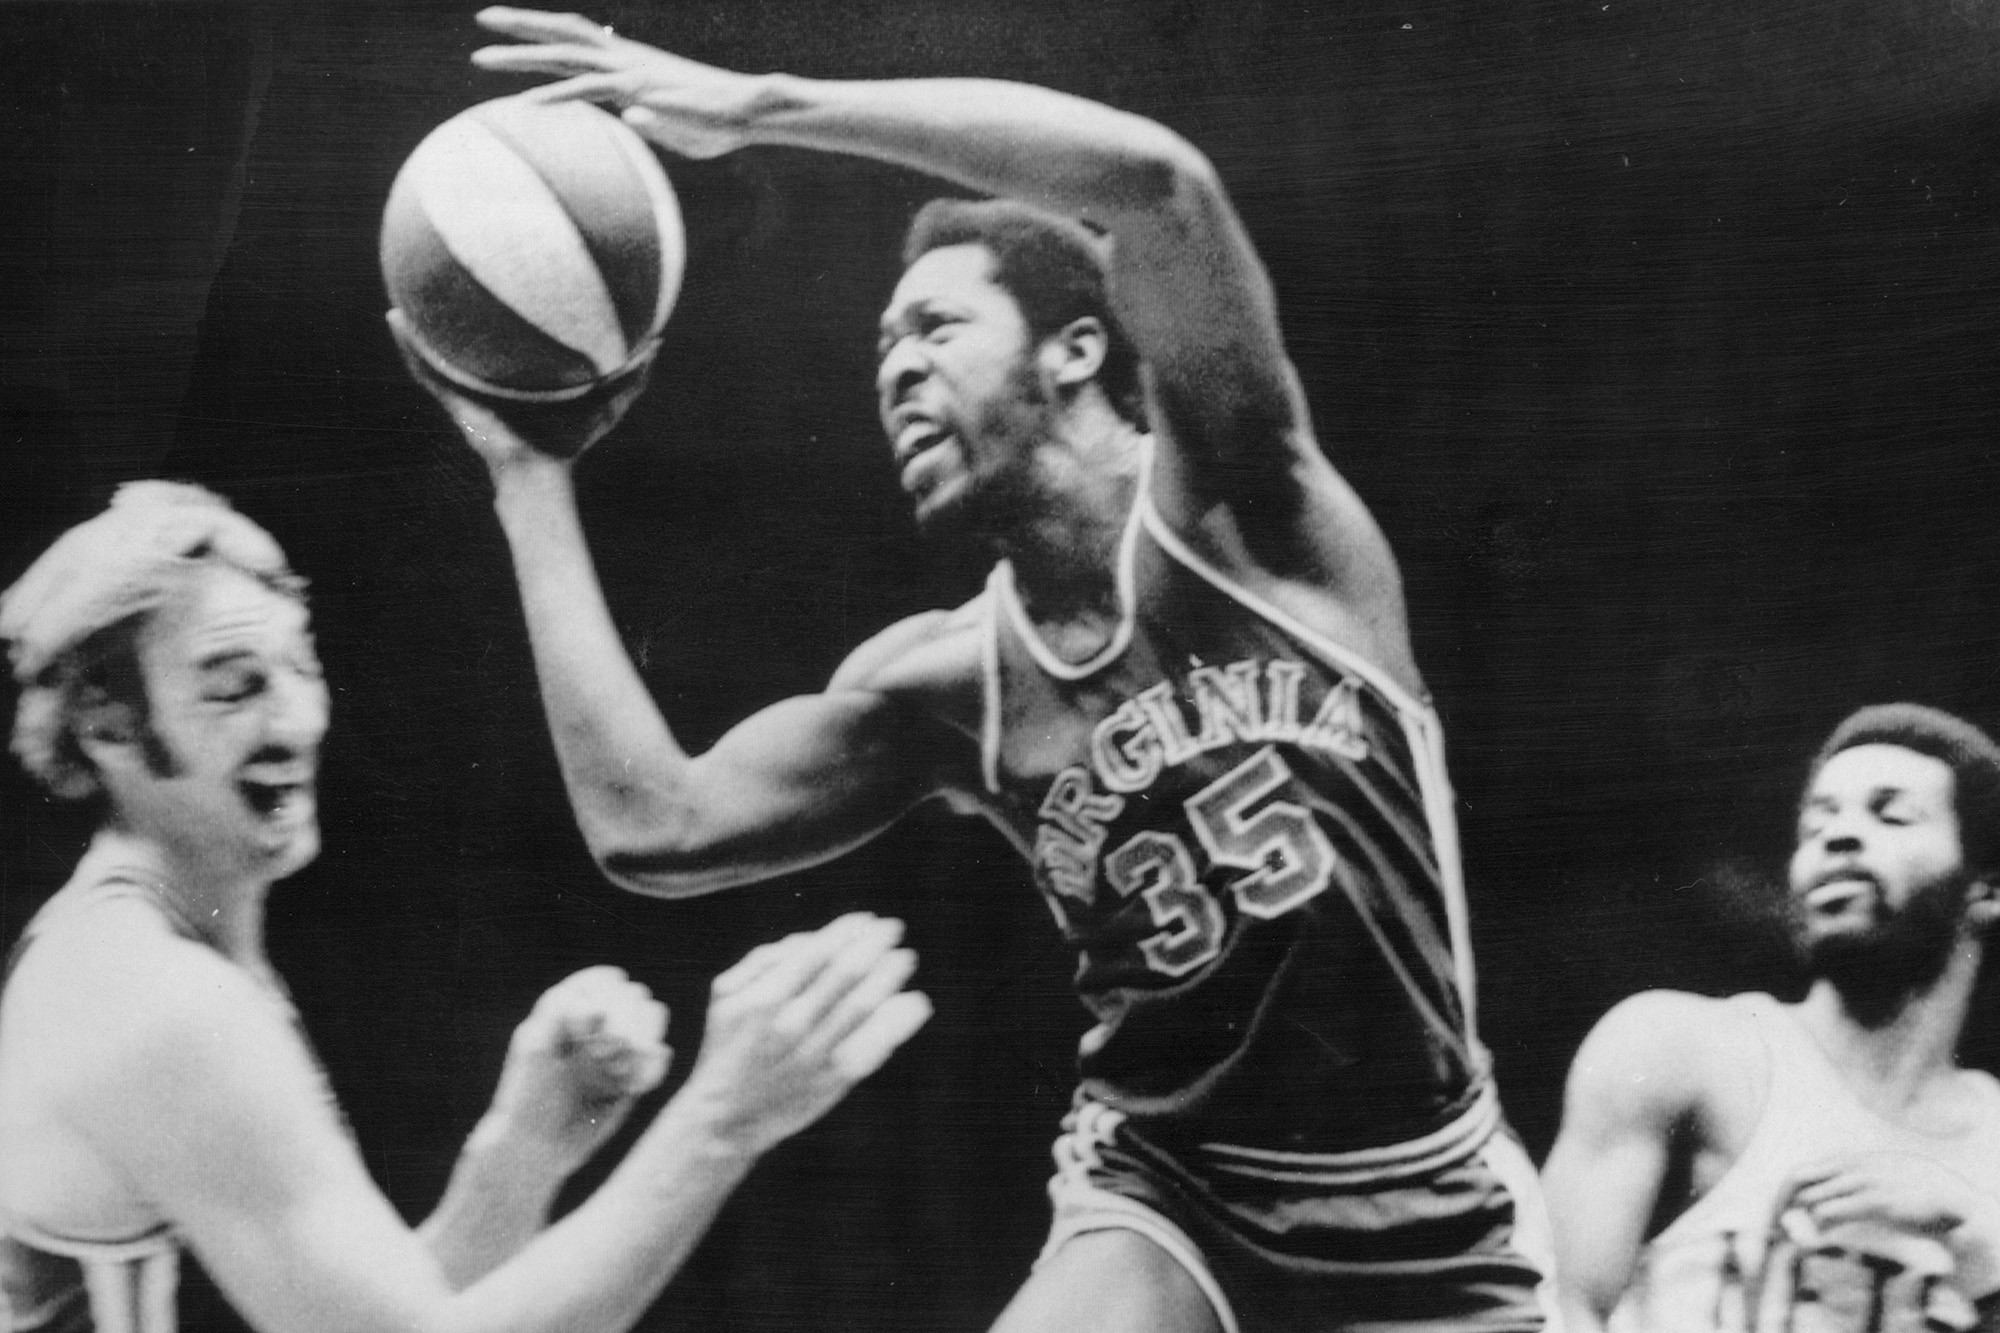 The Forgotten: Ex-ABA players are struggling to get the help they need